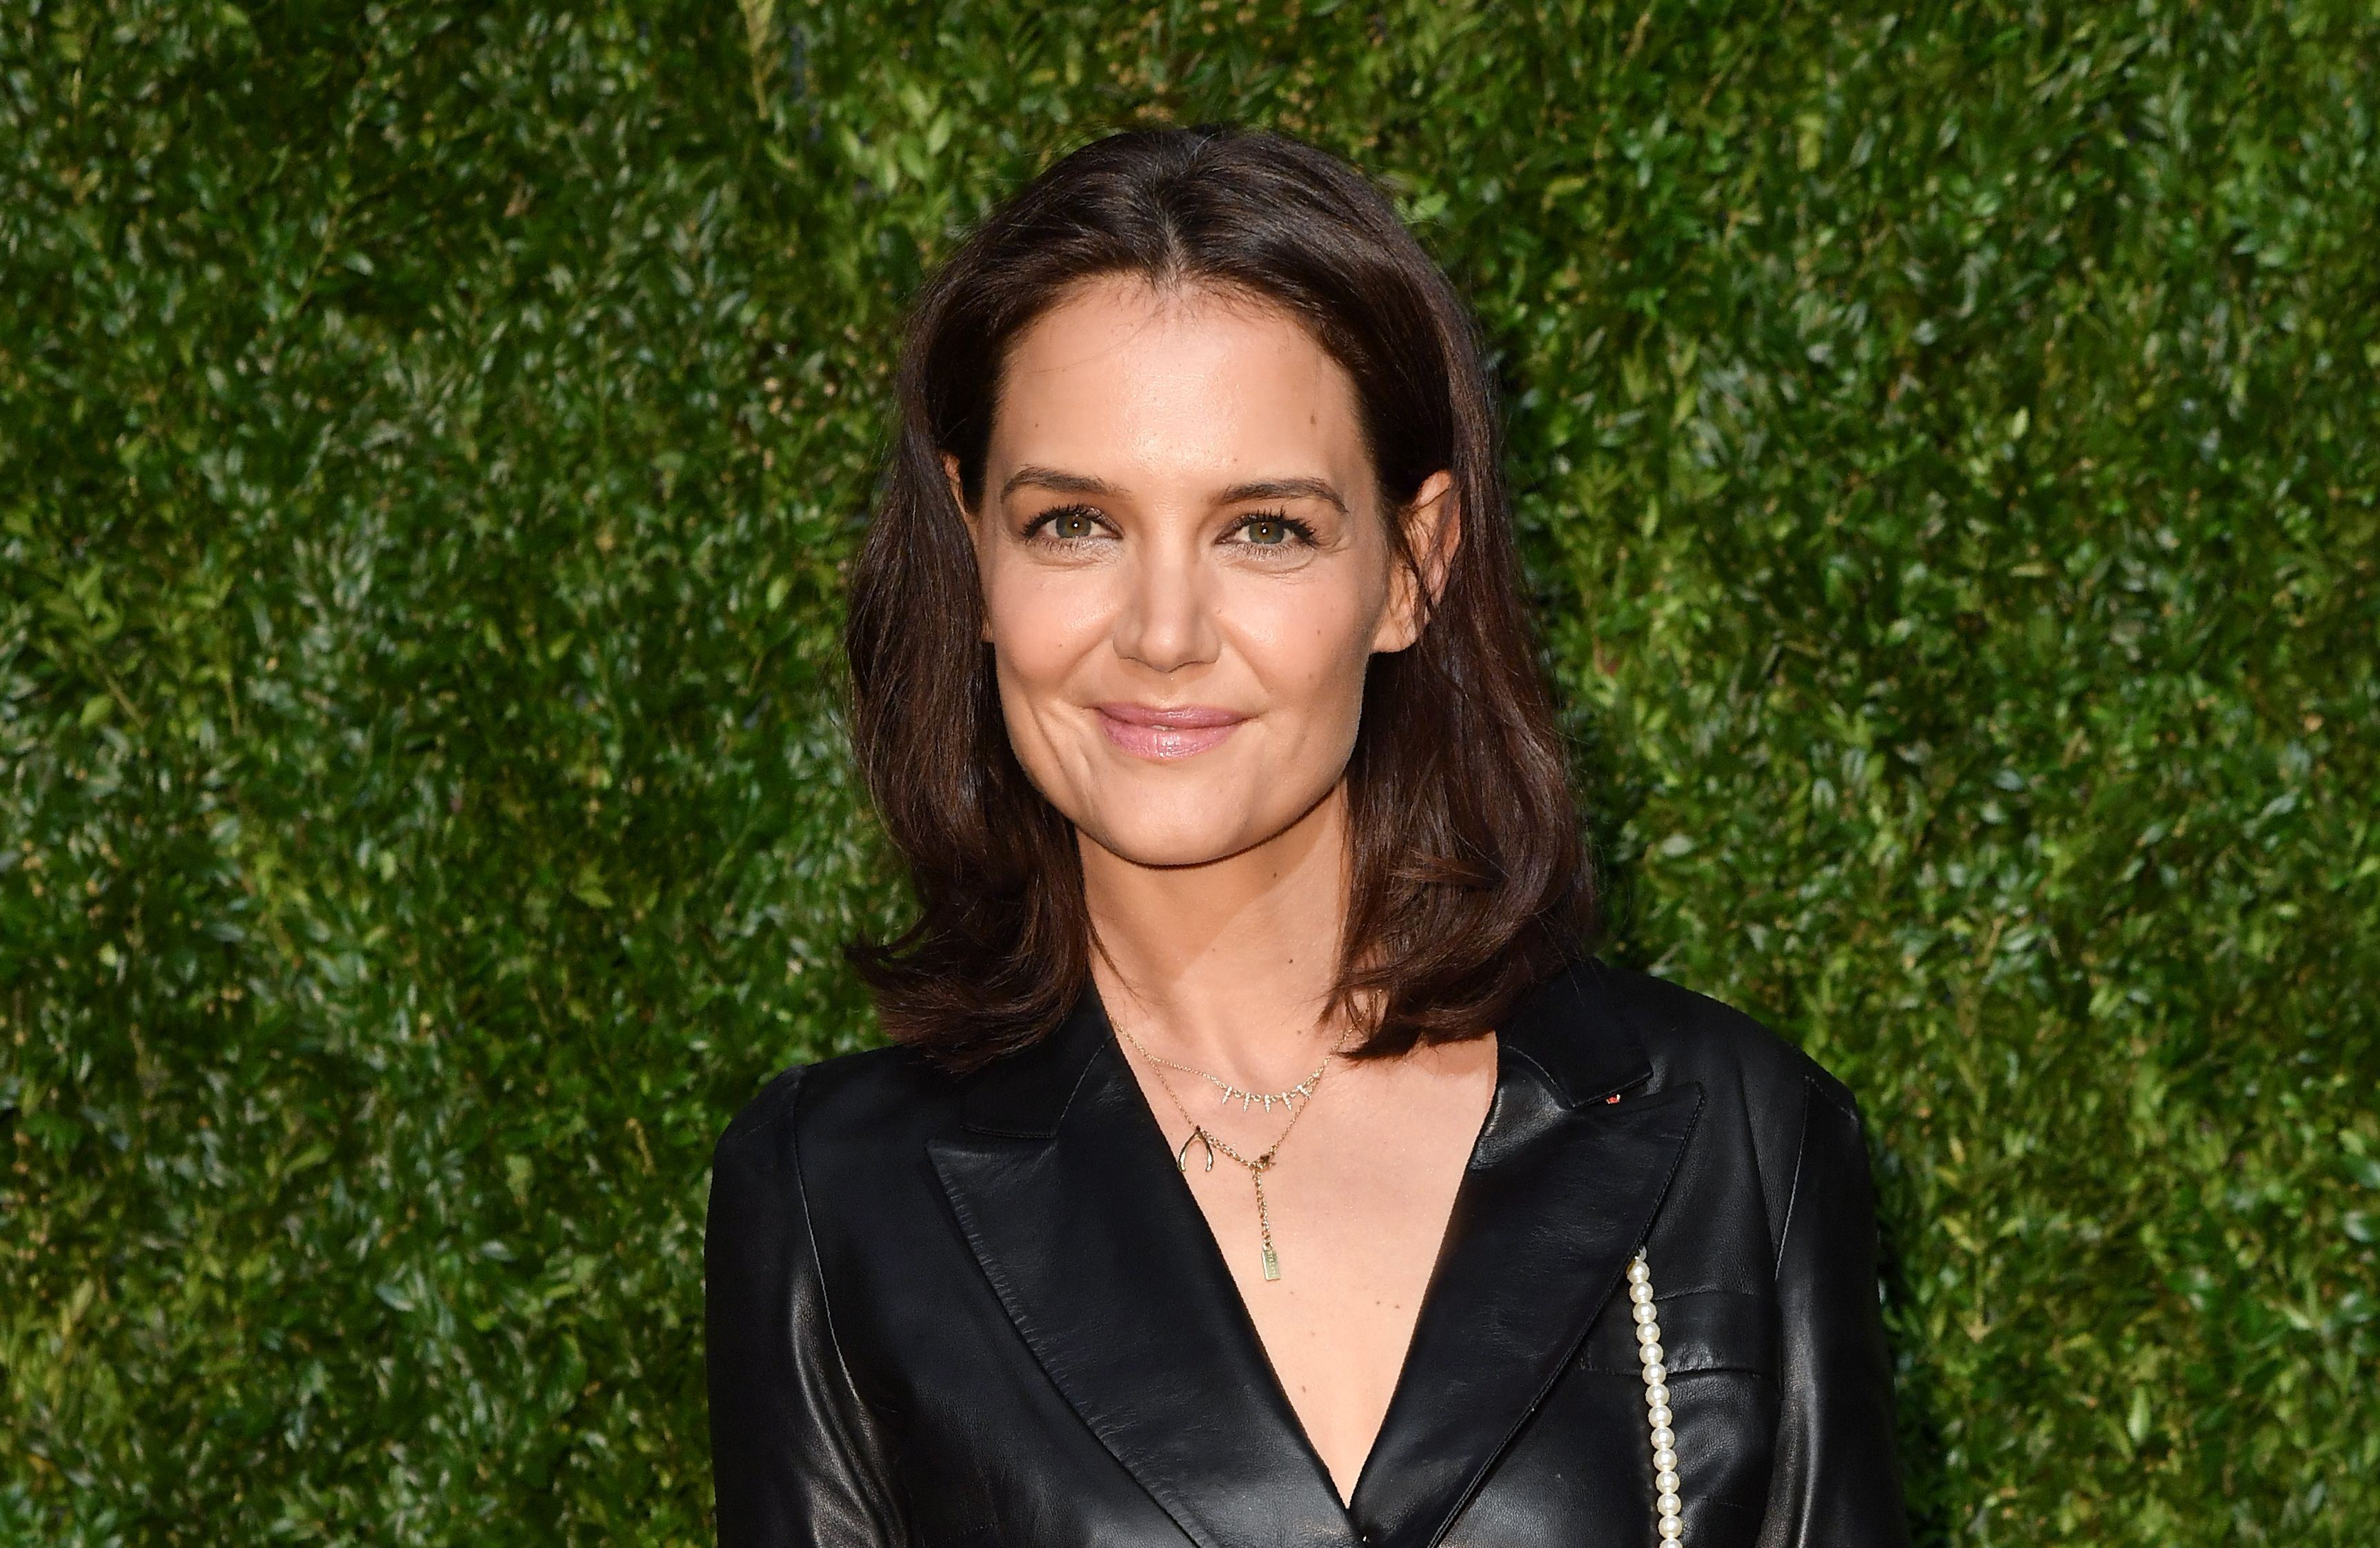 Katie Holmes posing in front of grass bush.